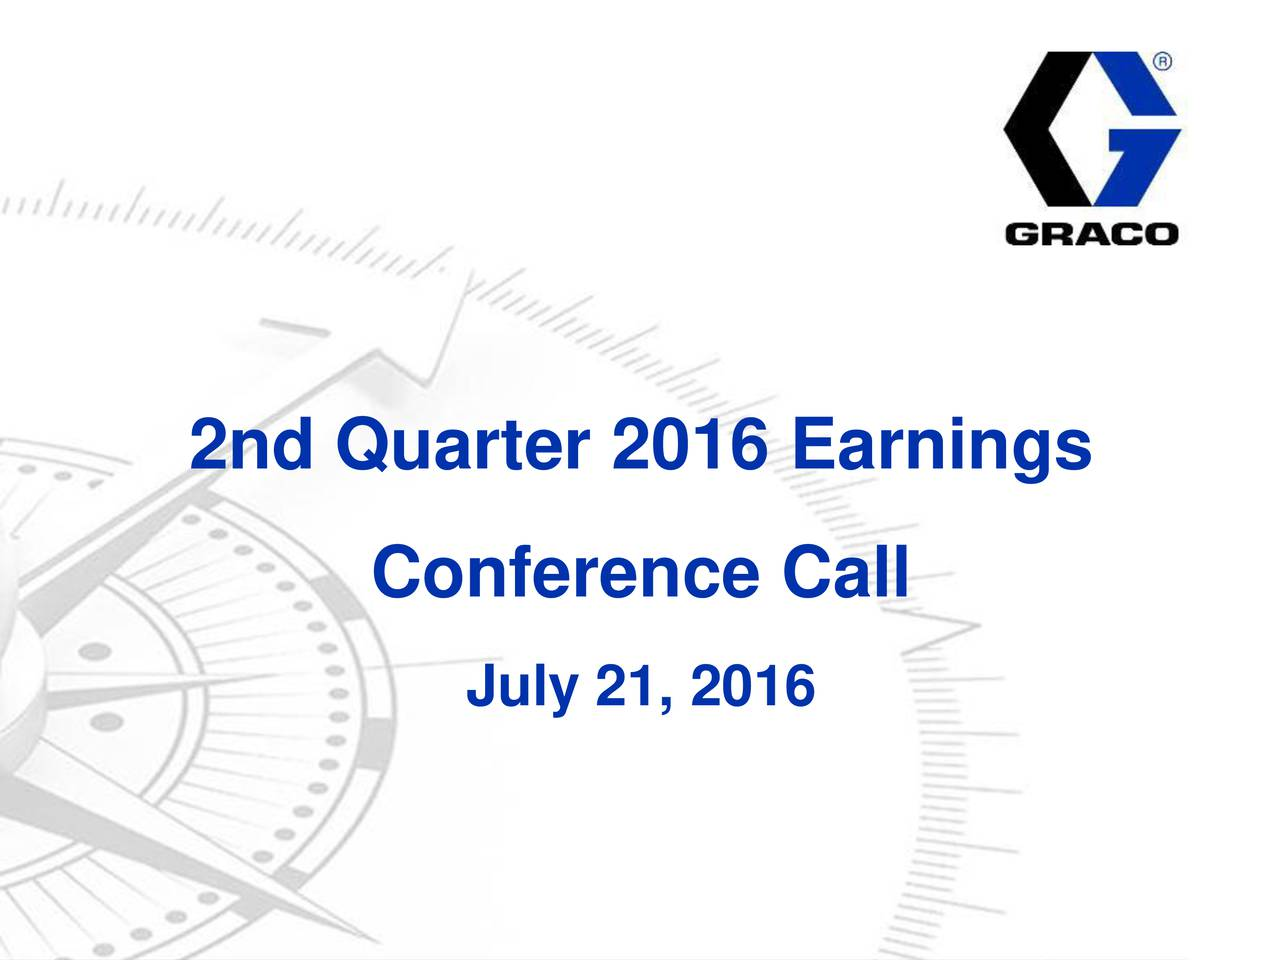 Conference Call July 21, 2016